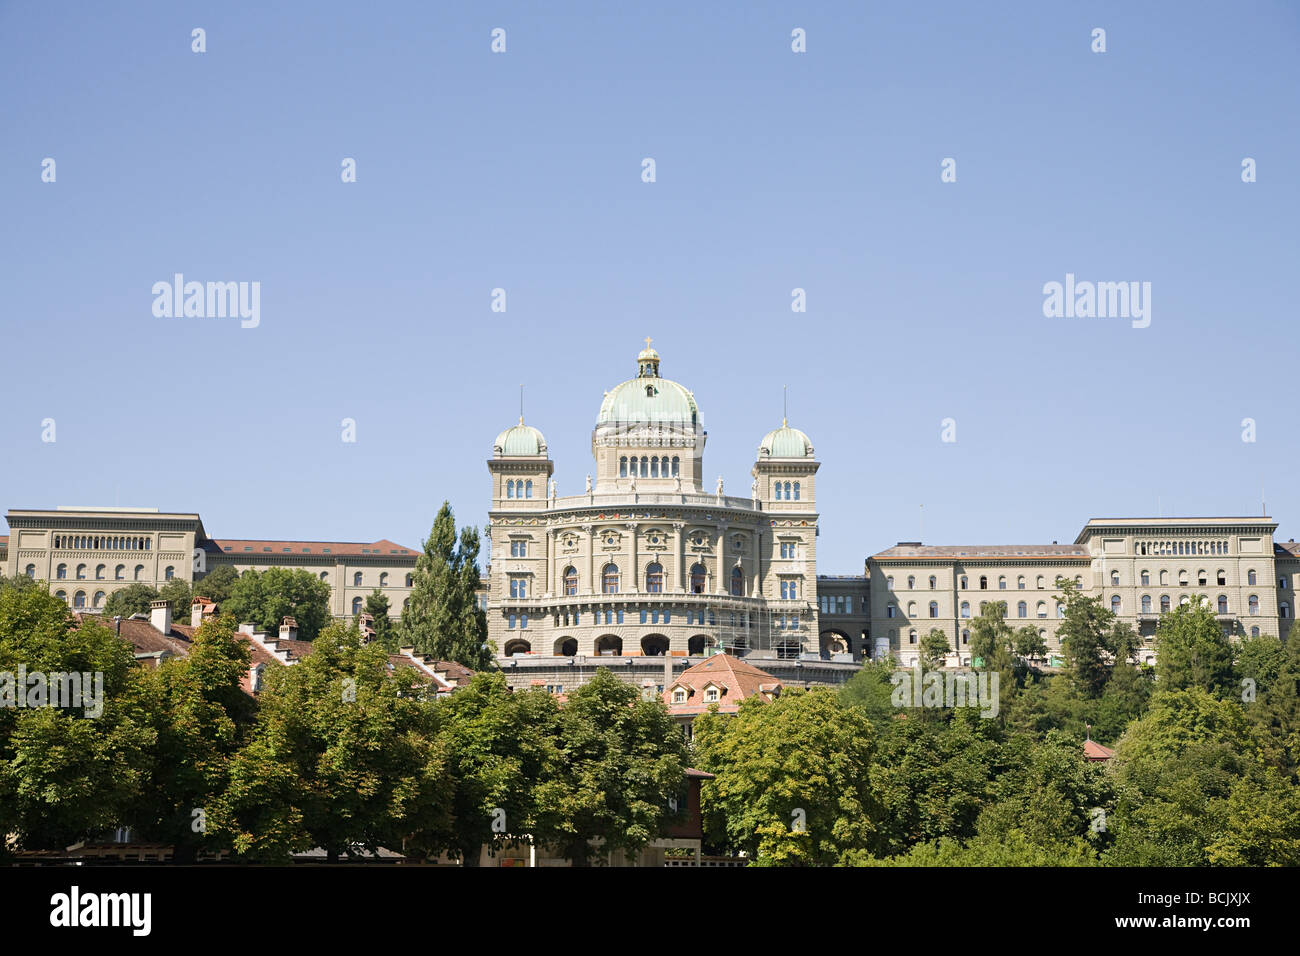 Federal building in berne switzerland - Stock Image